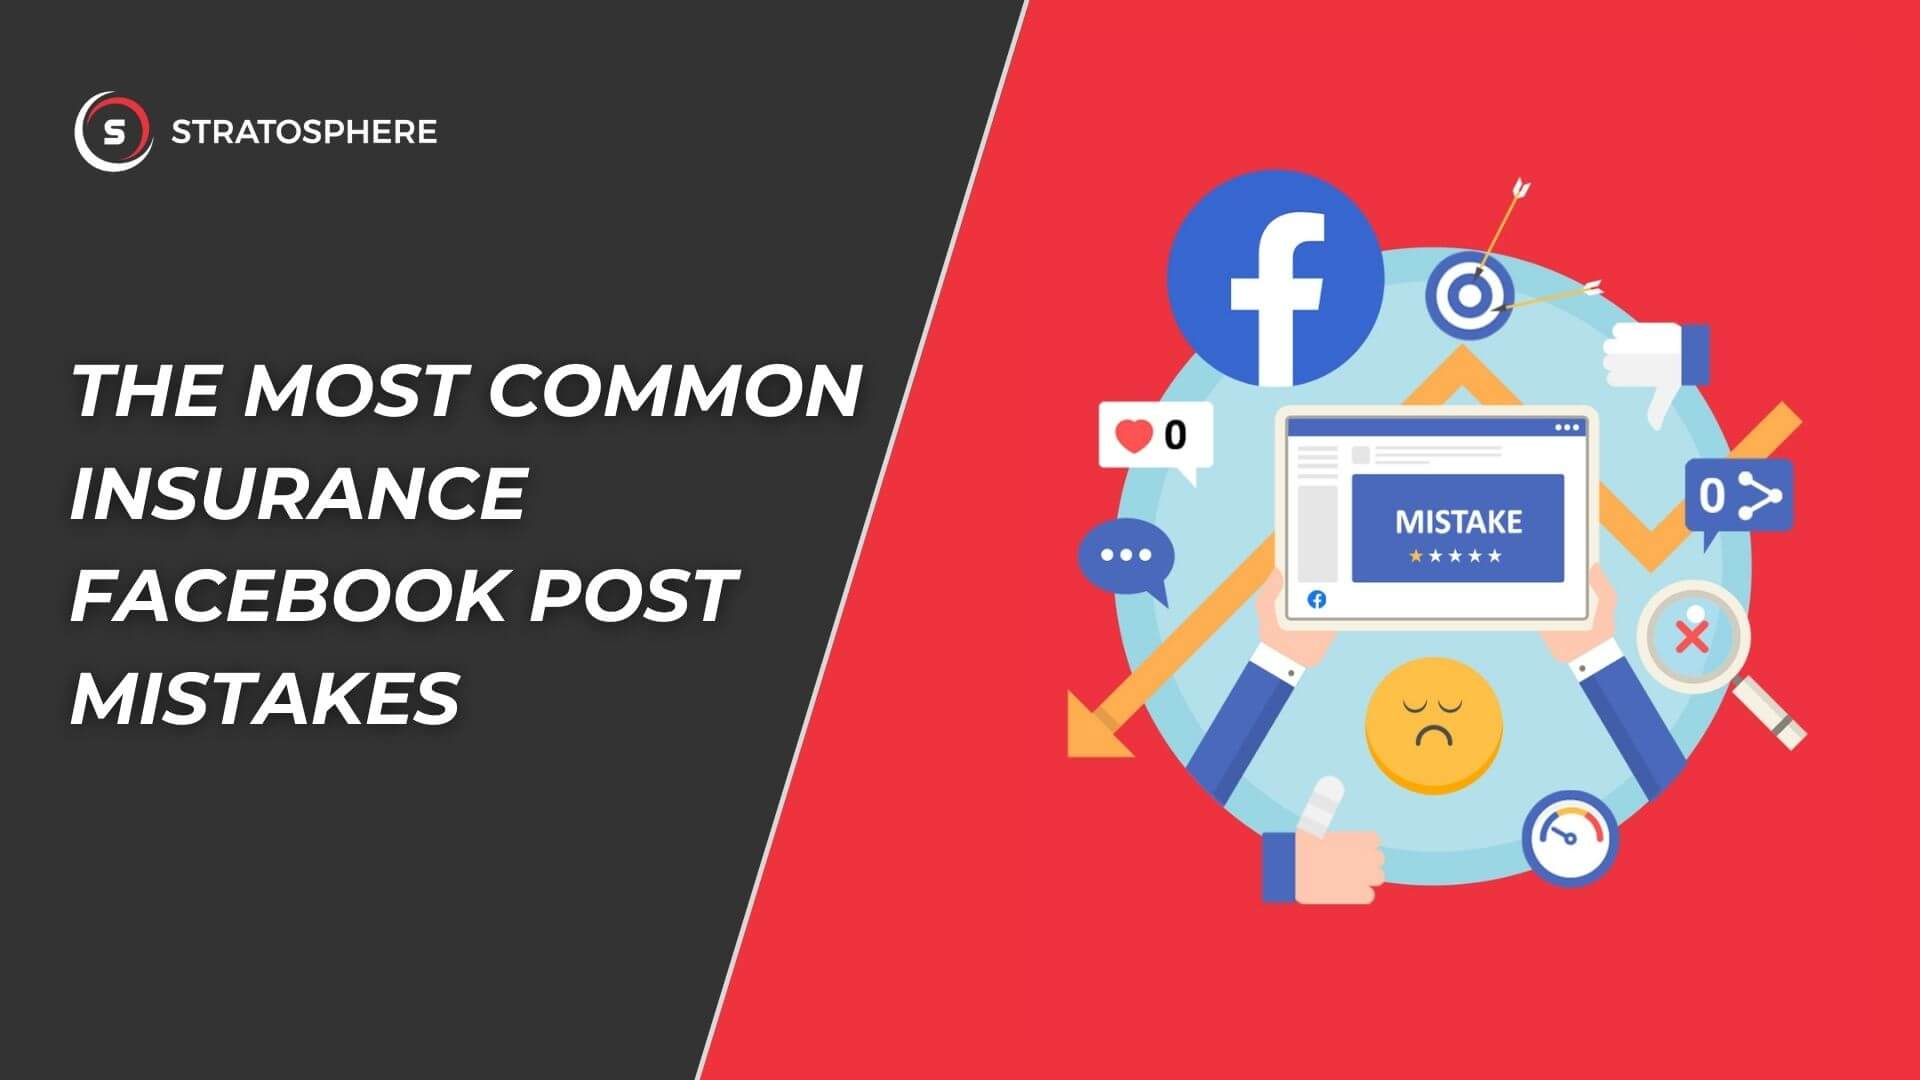 17 Common Insurance Facebook Post Mistakes & Tips to Avoid Them